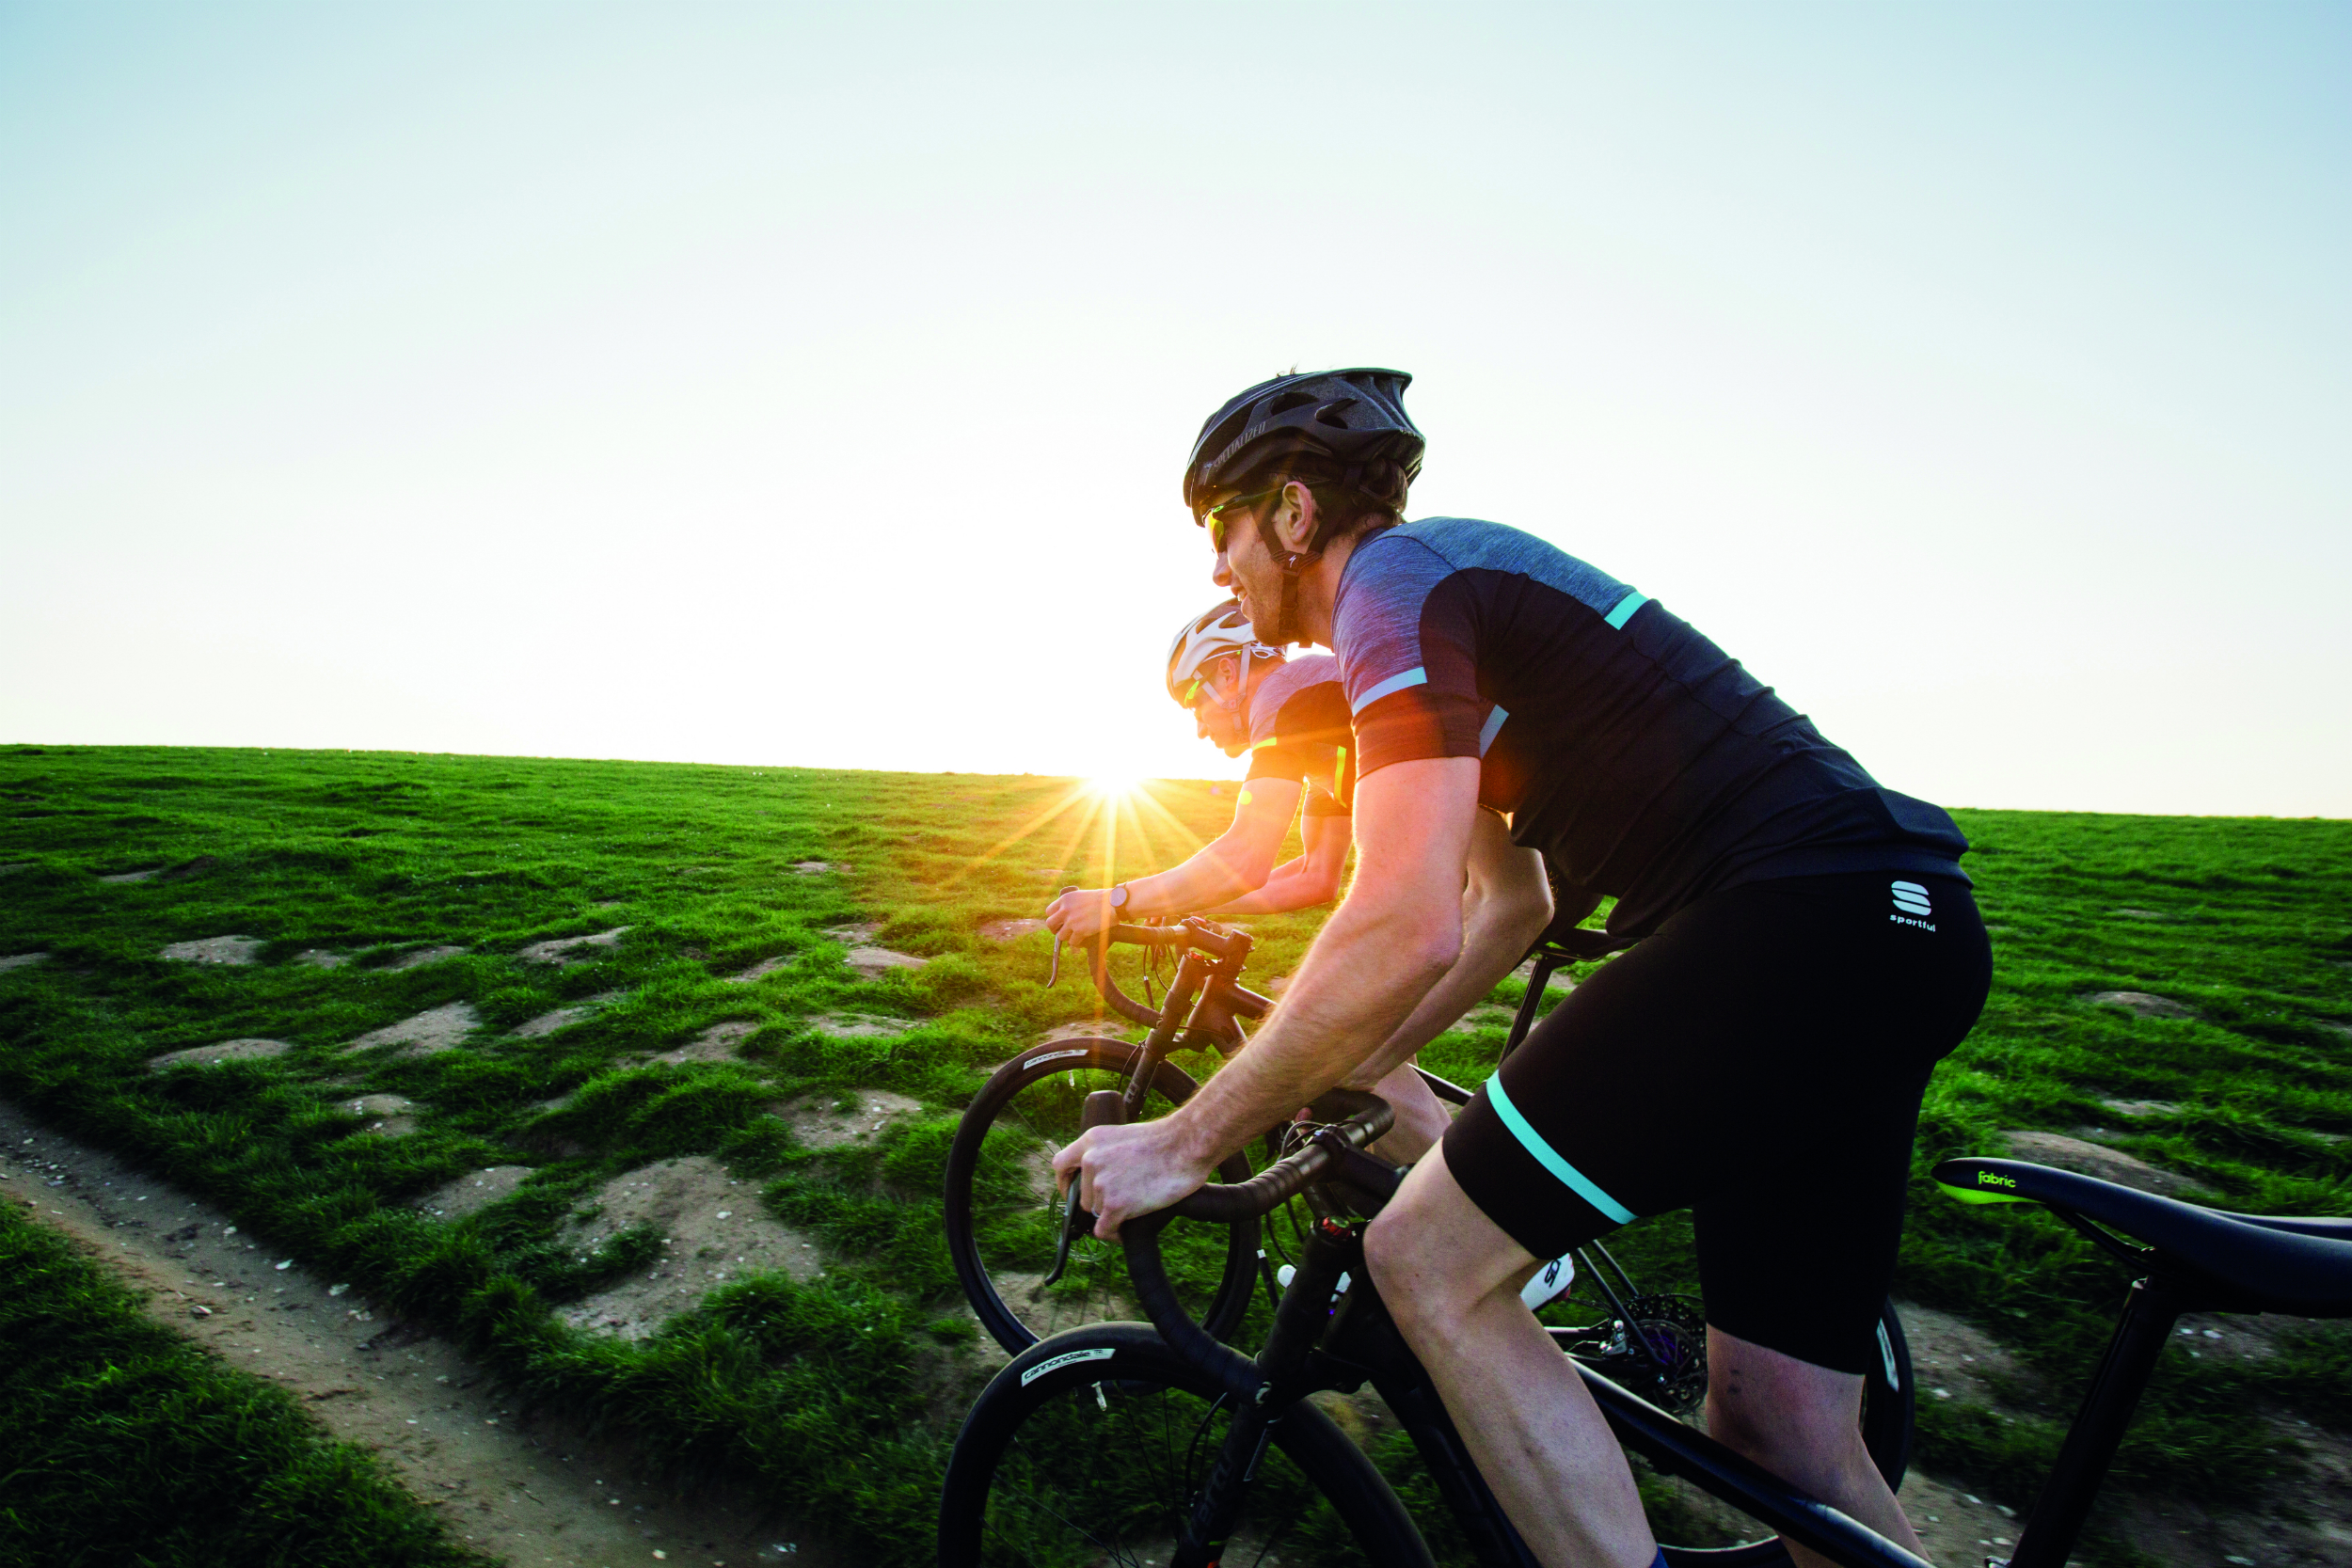 two cyclists riding off-road as the sun sets in giara cycling clothing